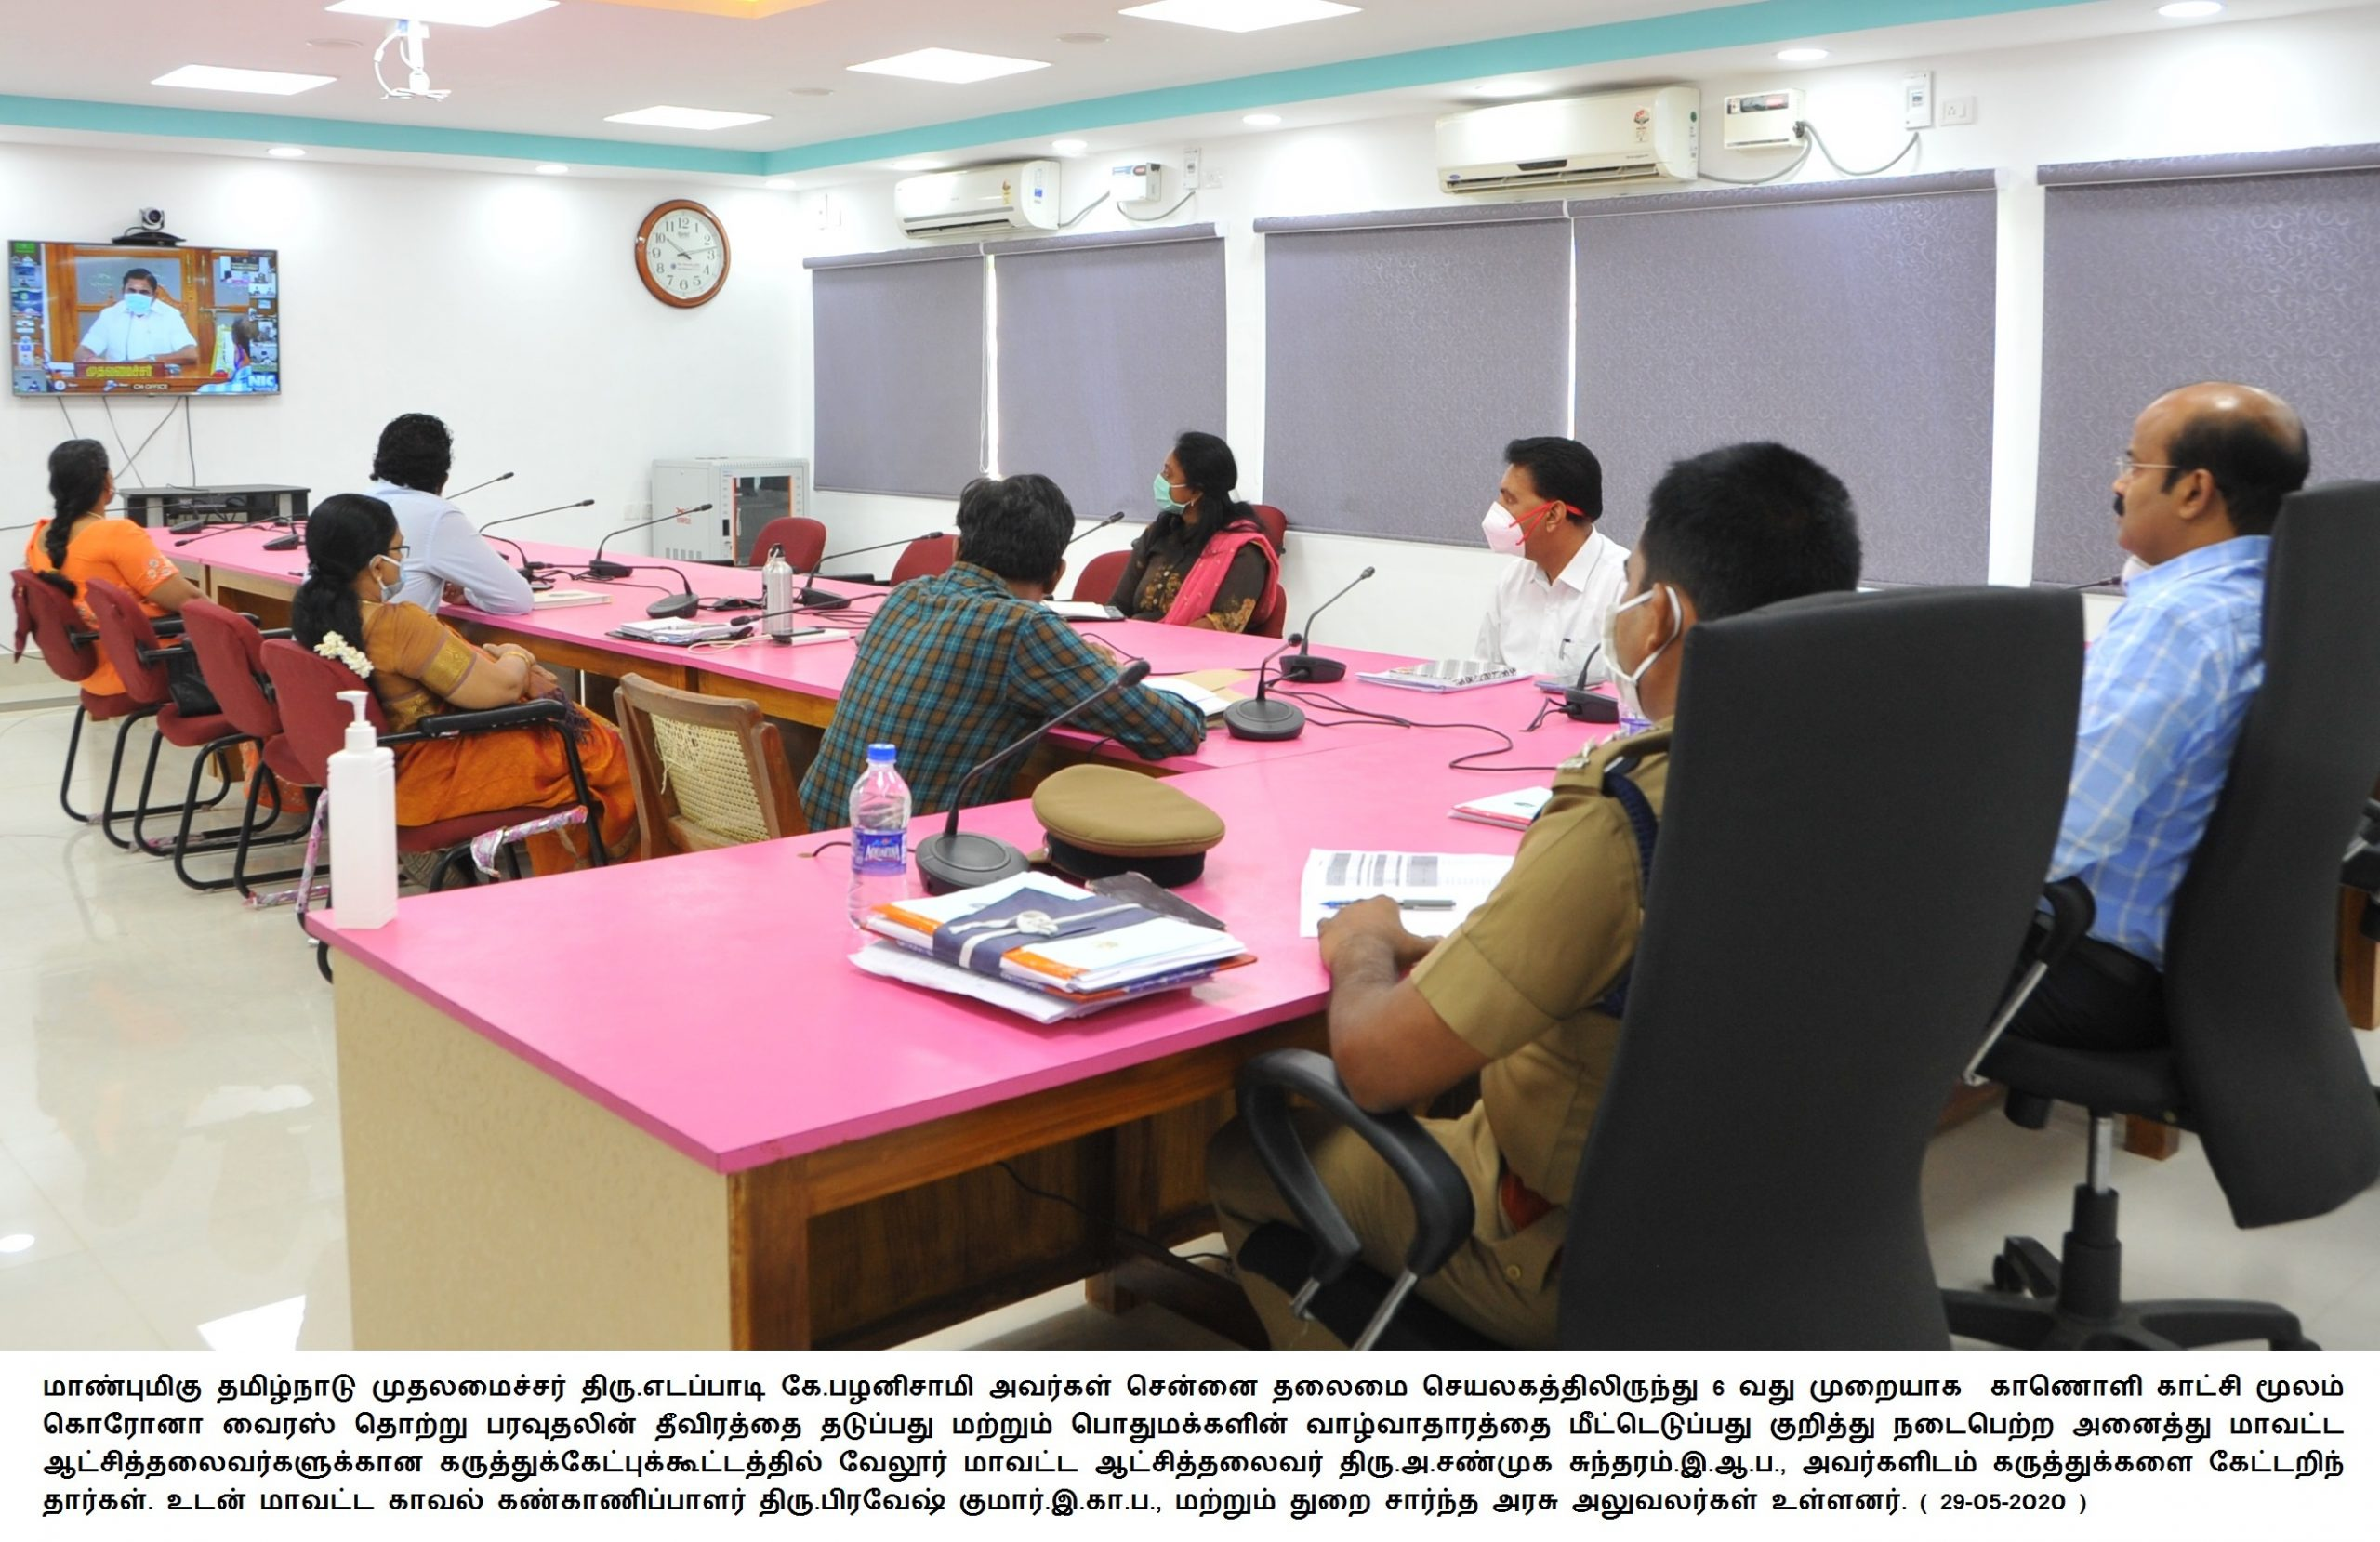 Corona Virus Preventive Methods Discussion through Video conference With Honorable Chief Minister Edapadi K.Palanisami 29-05-2020